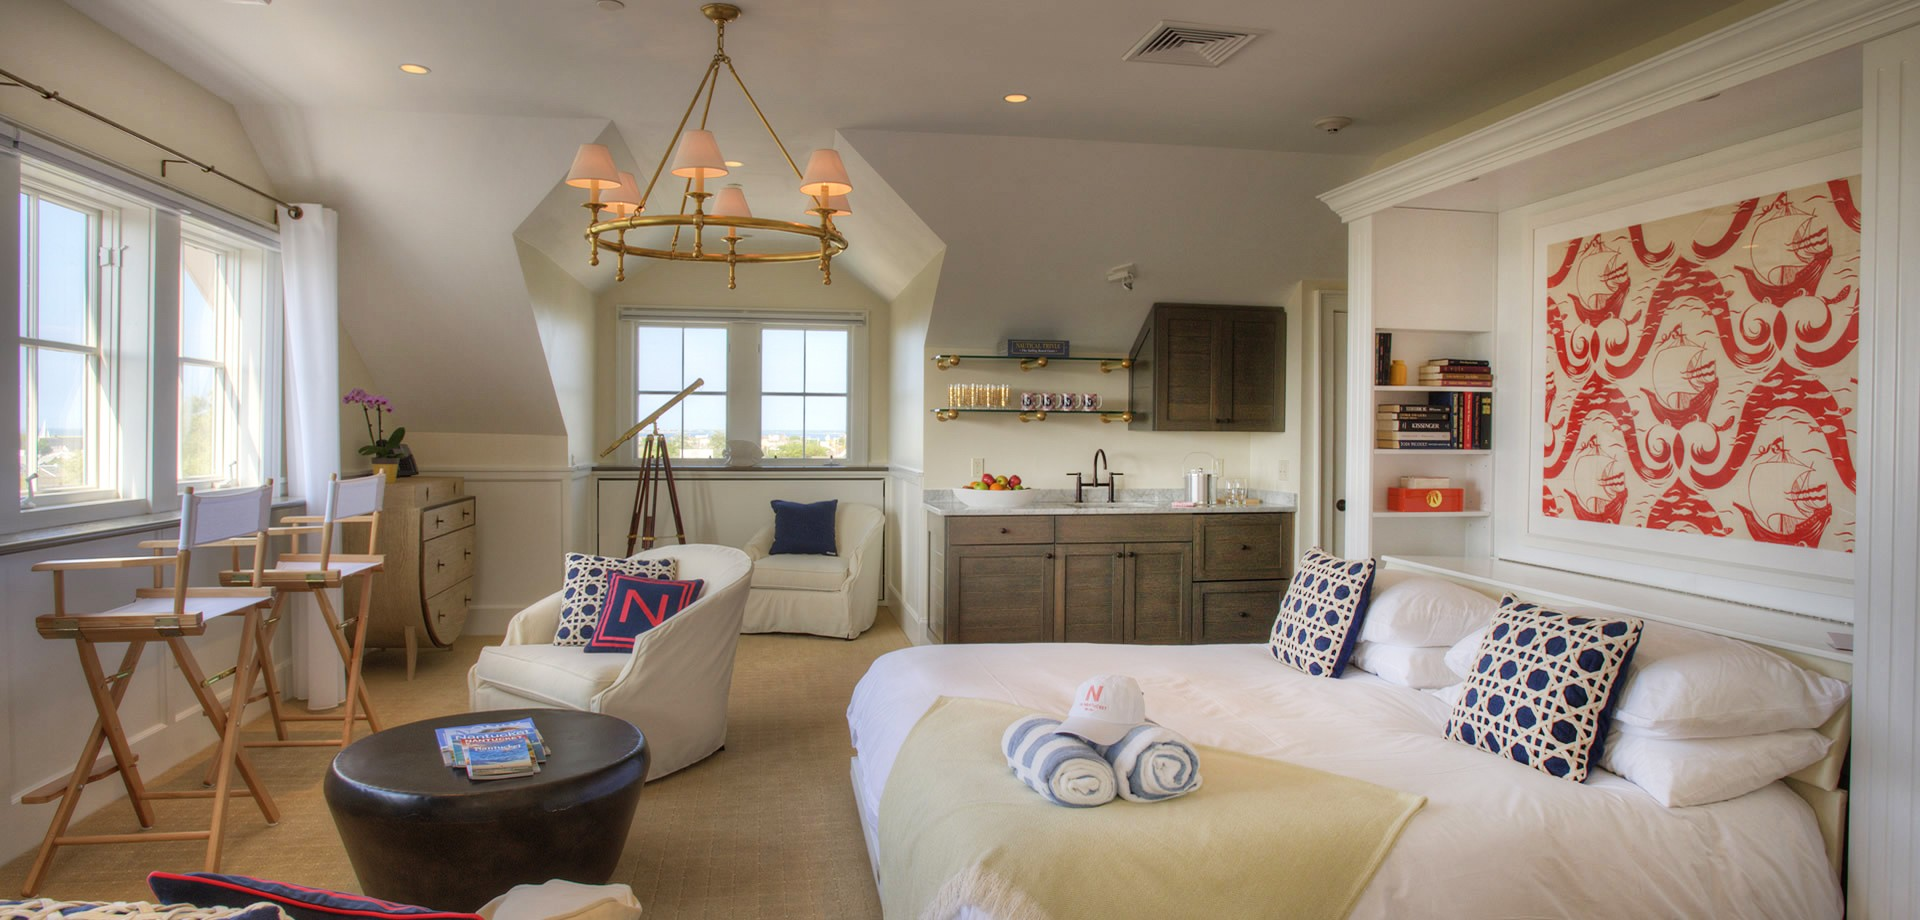 The Nantucket Hotel and Resort